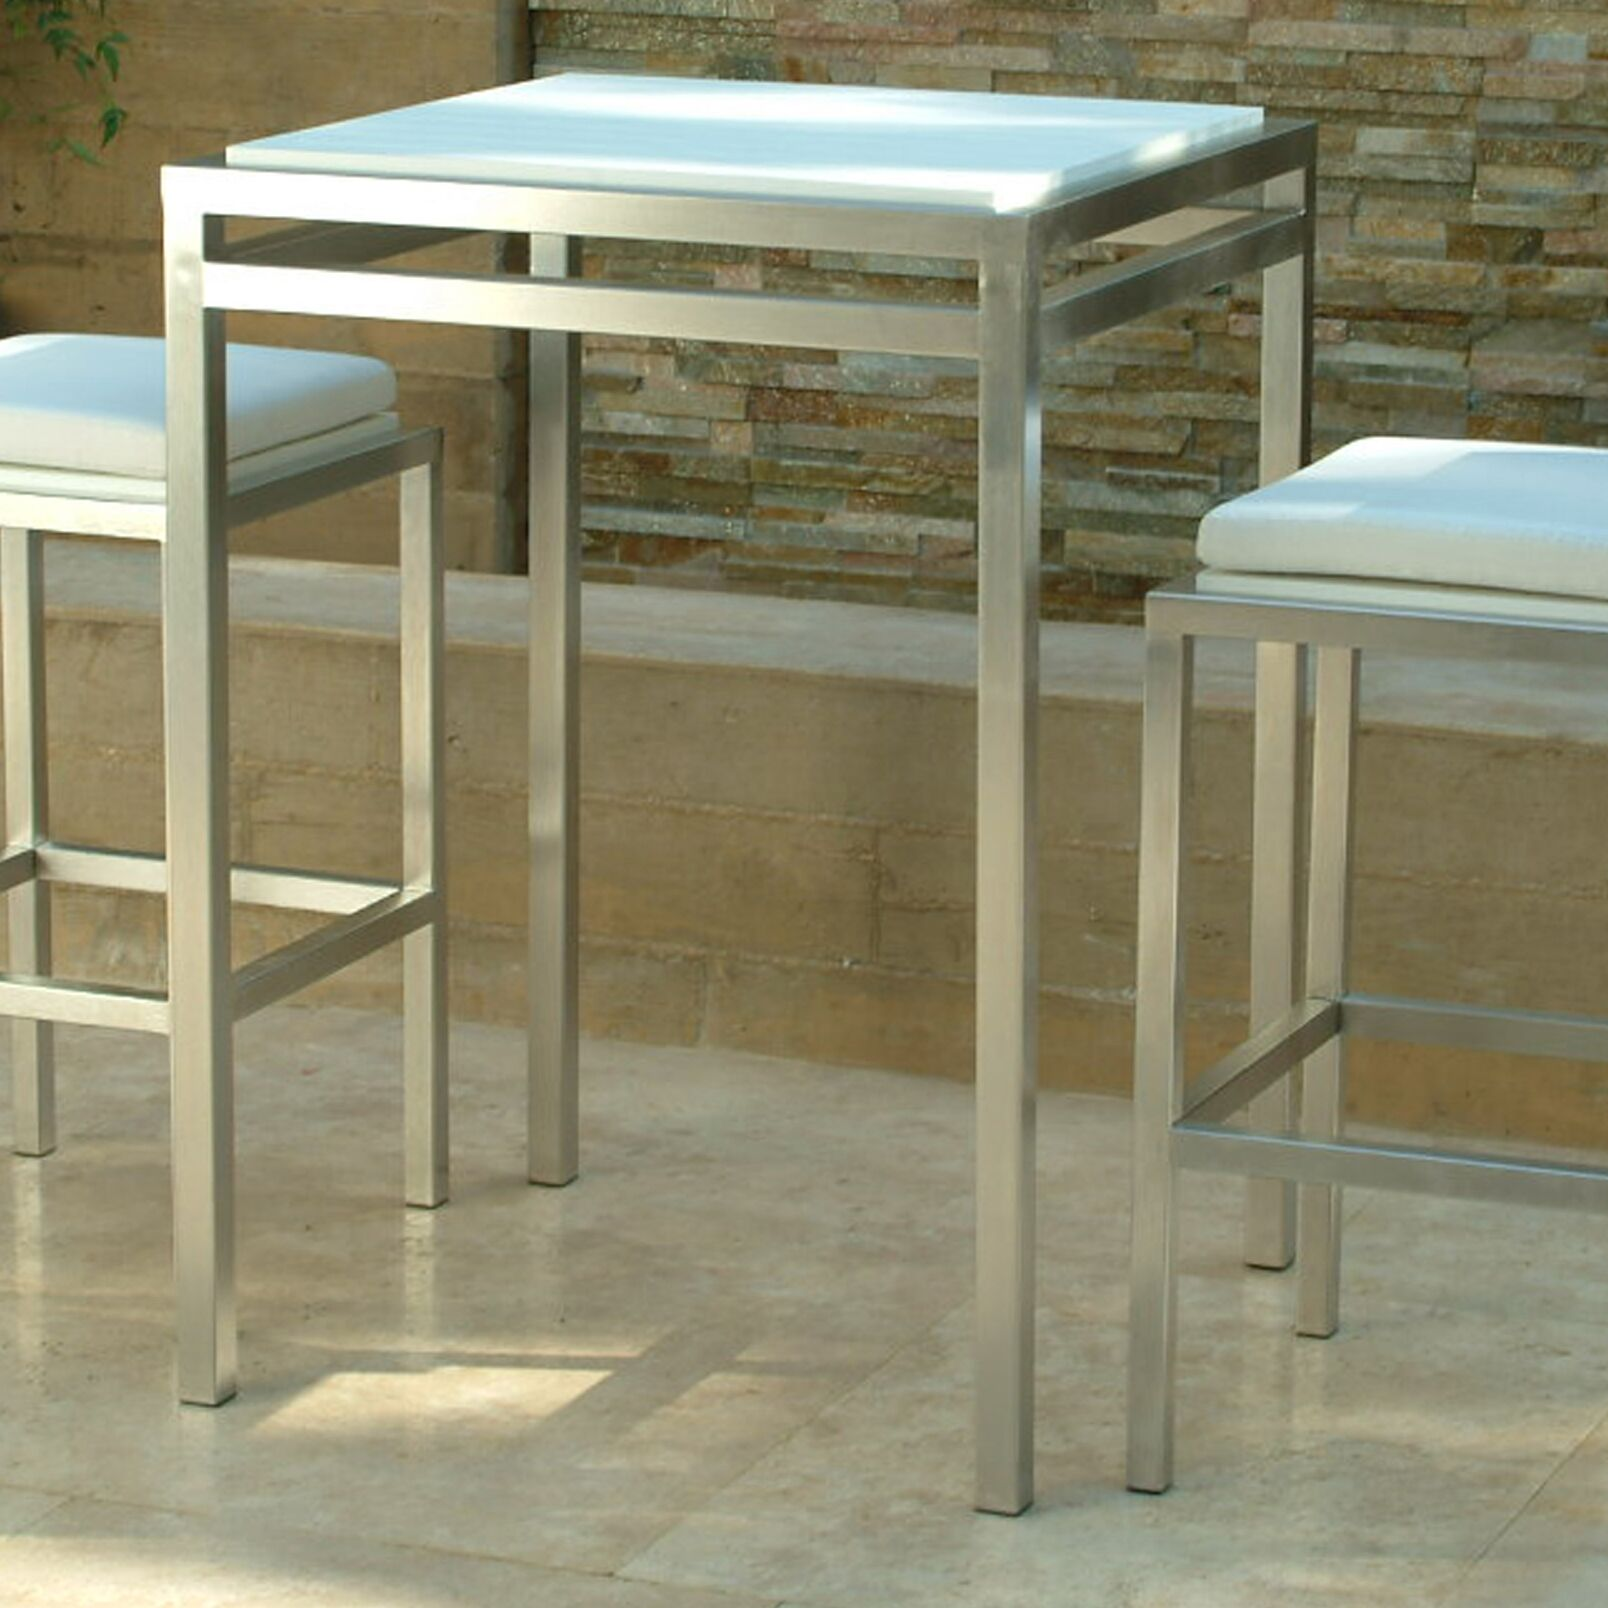 Talt Stainless Steel Bar Table Table Base Finish: Stainless Steel, Table Top Finish: Seafoam Polyboard, Size: 41.5